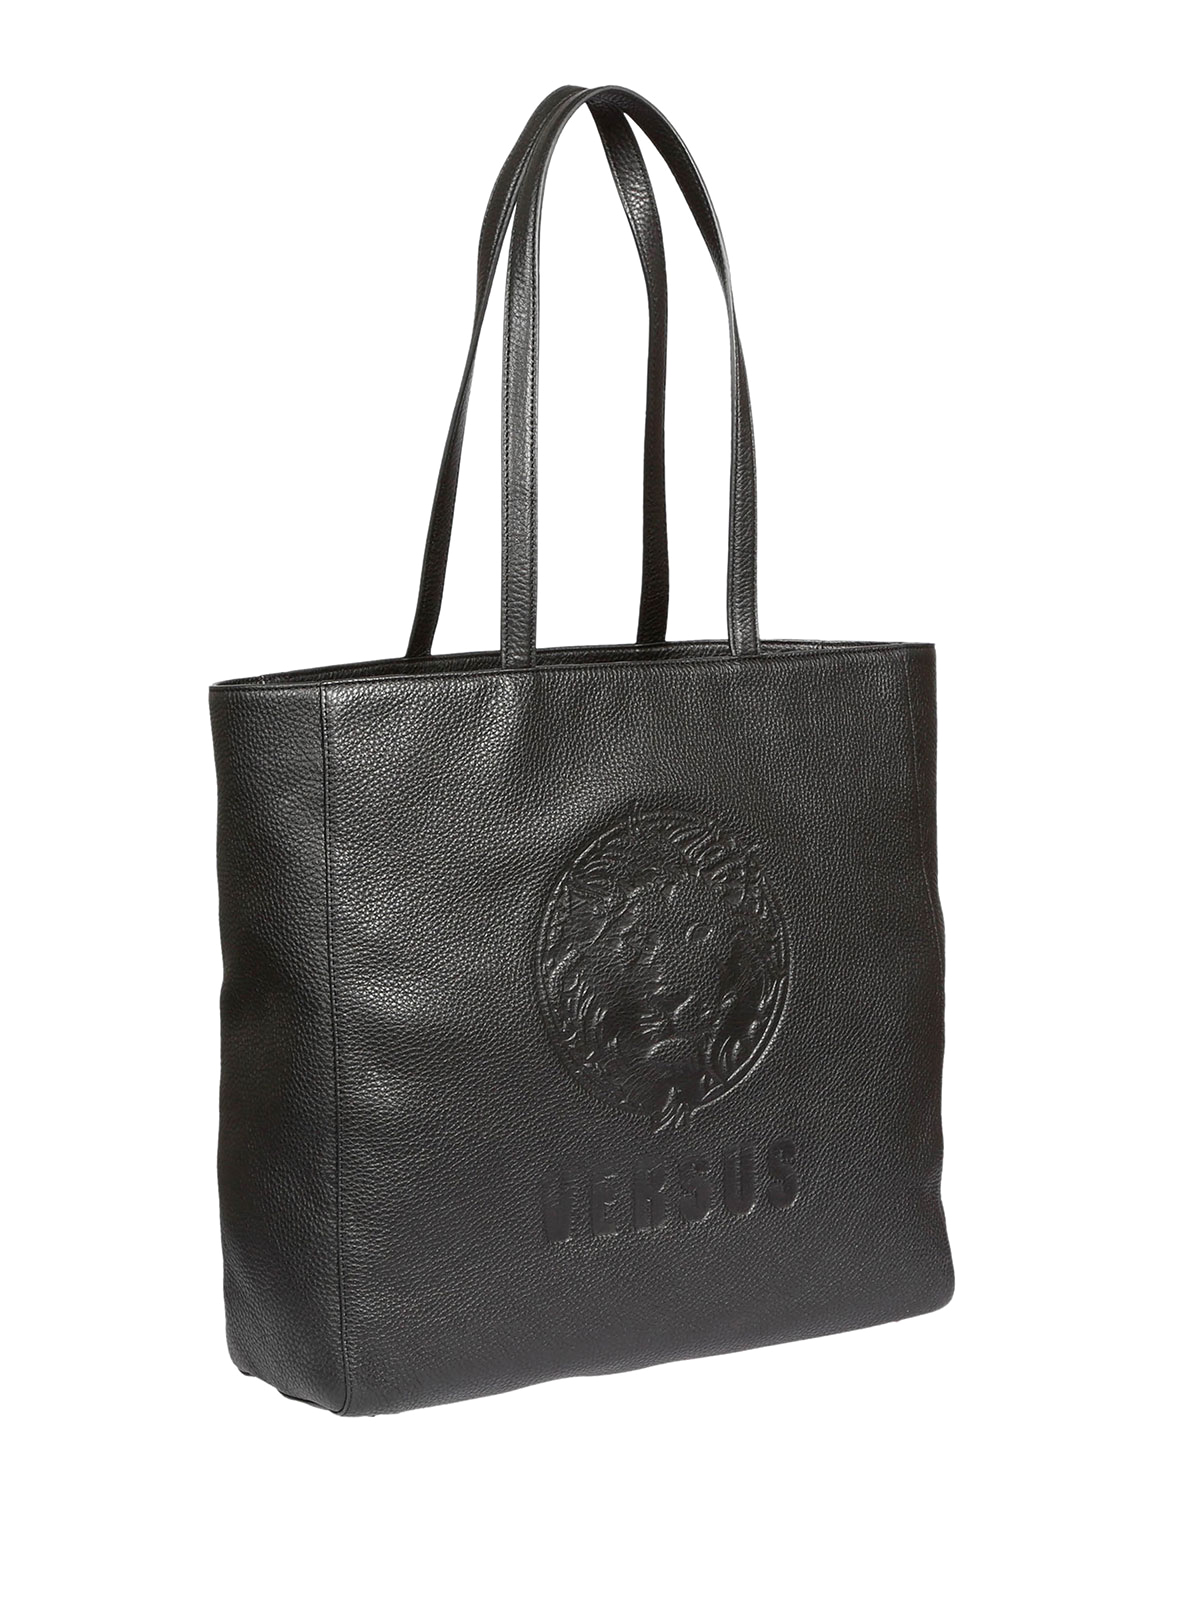 c30598f1d1 Versus Versace  totes bags online - EMBOSSED LION HEAD LEATHER TOTE